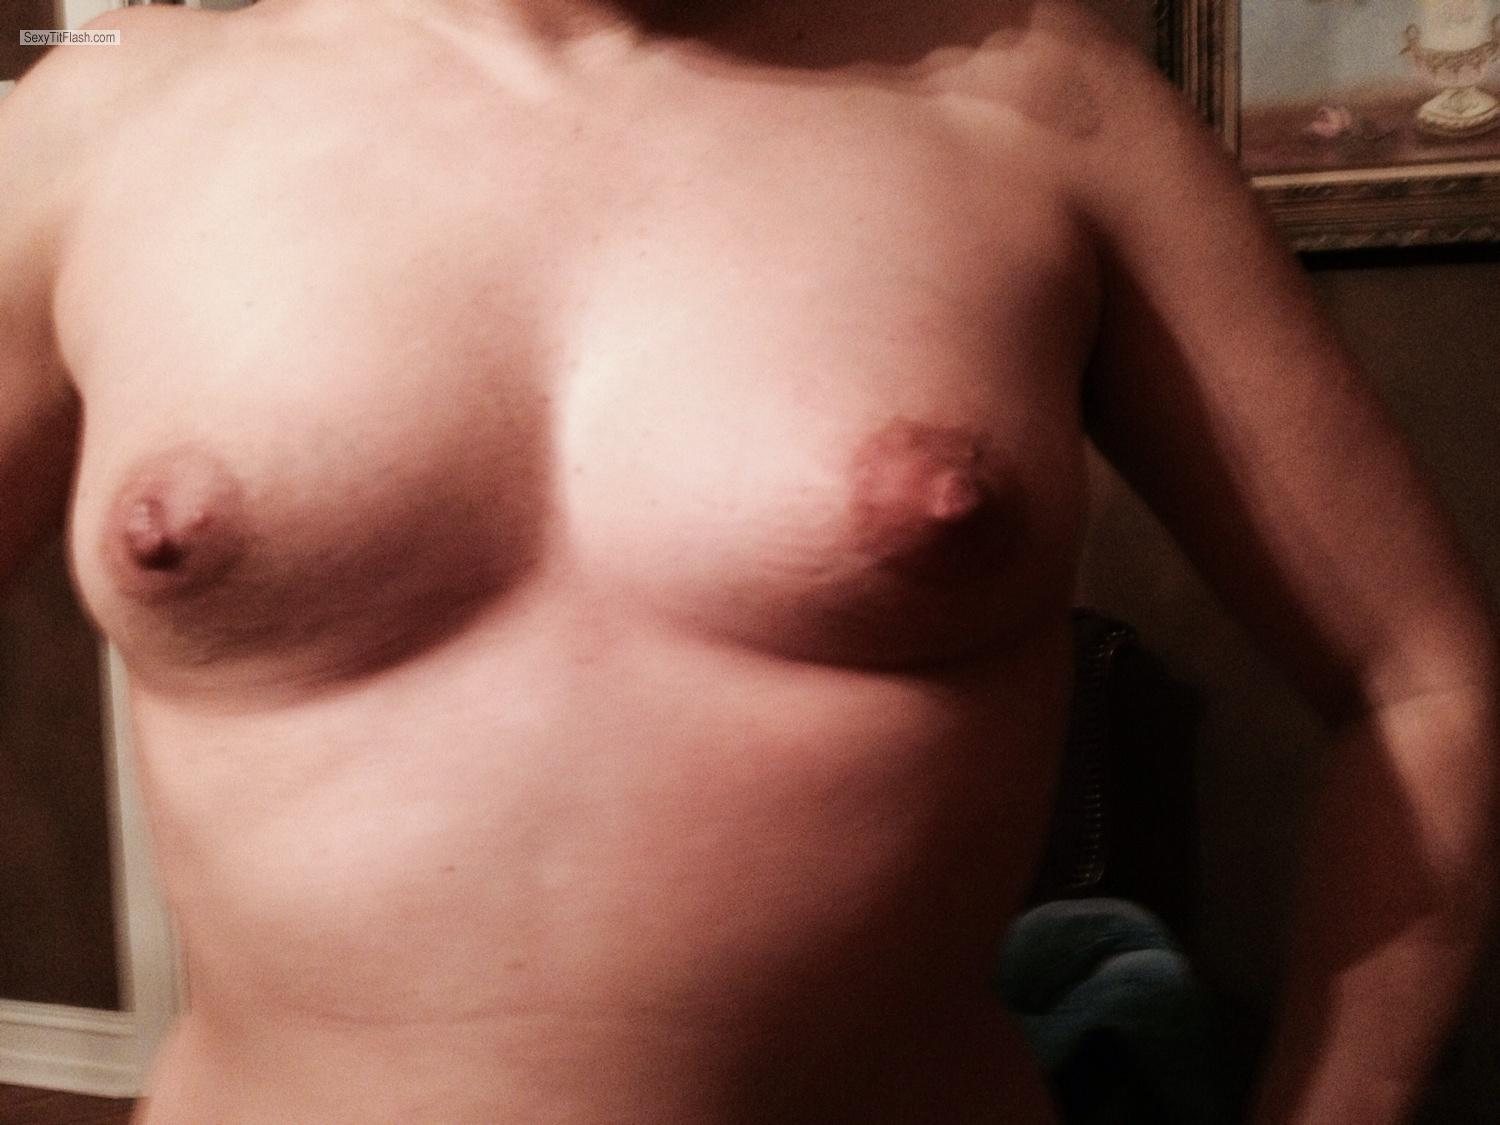 Tit Flash: Small Tits By IPhone - Hot Milf from United States